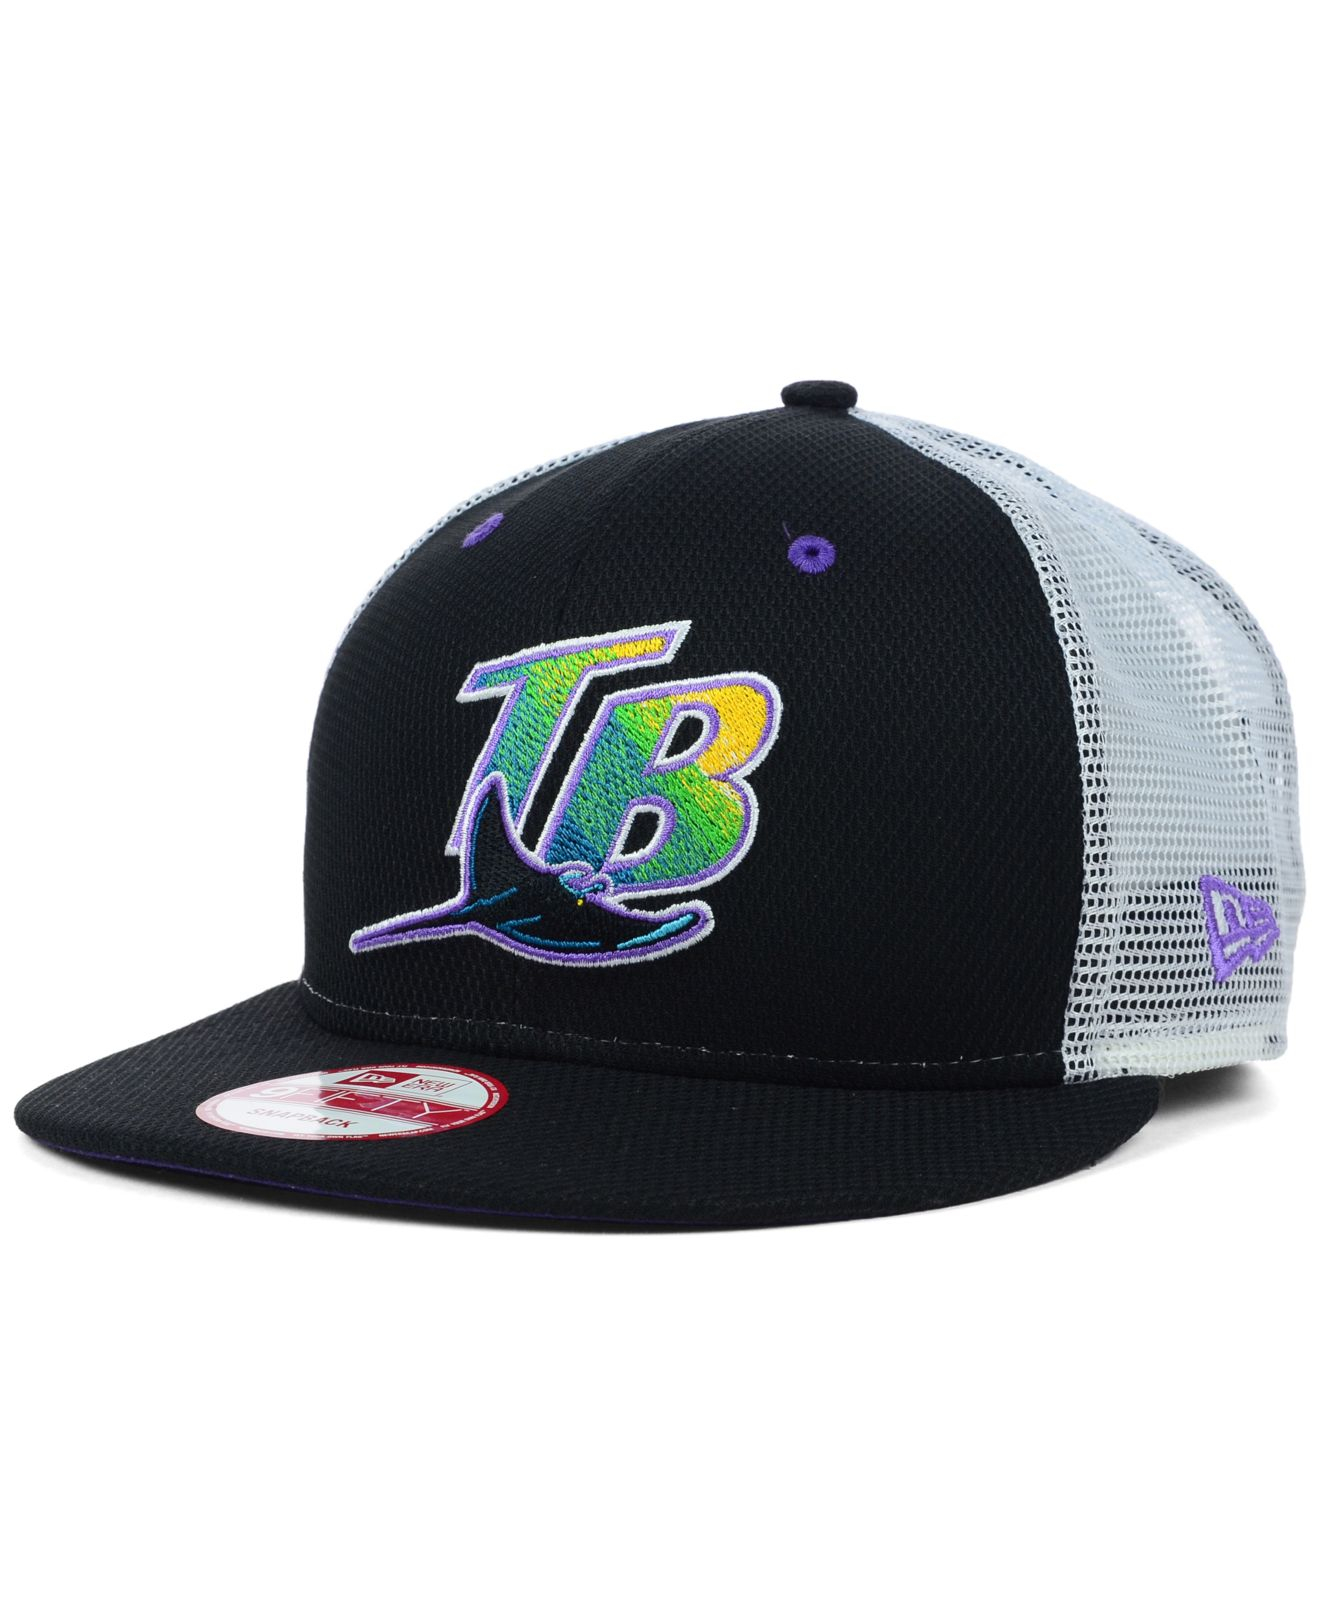 ab0ff525 where to buy tampa bay rays new era mlb blackout mesh 9fifty ...